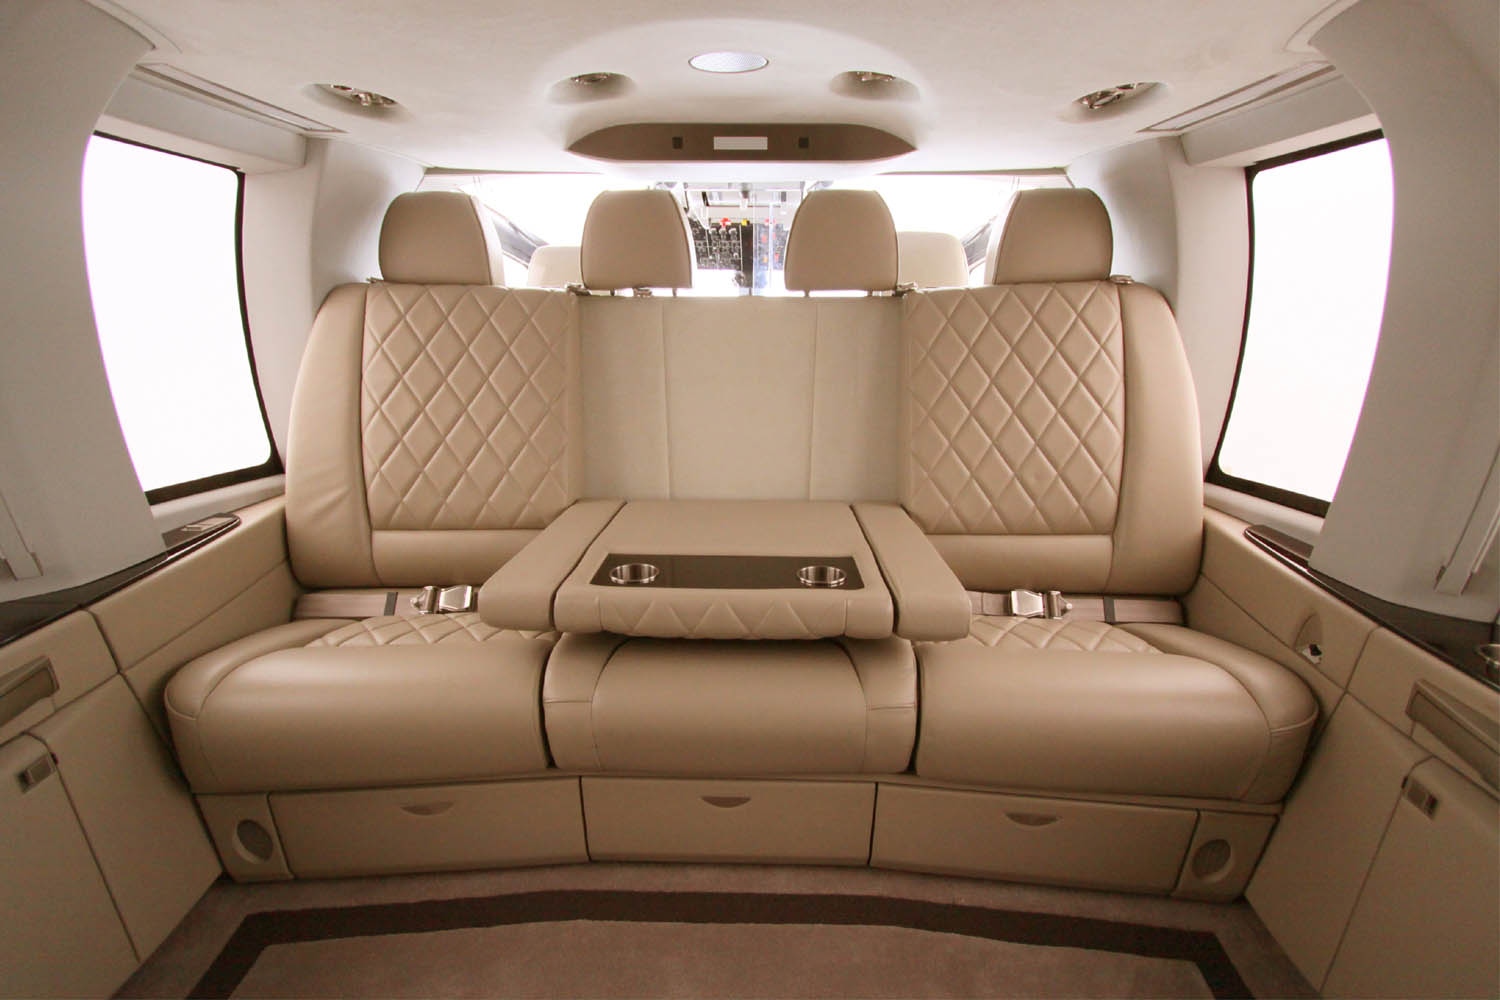 Differences Between Comfort And VIP Helicopter Interiors